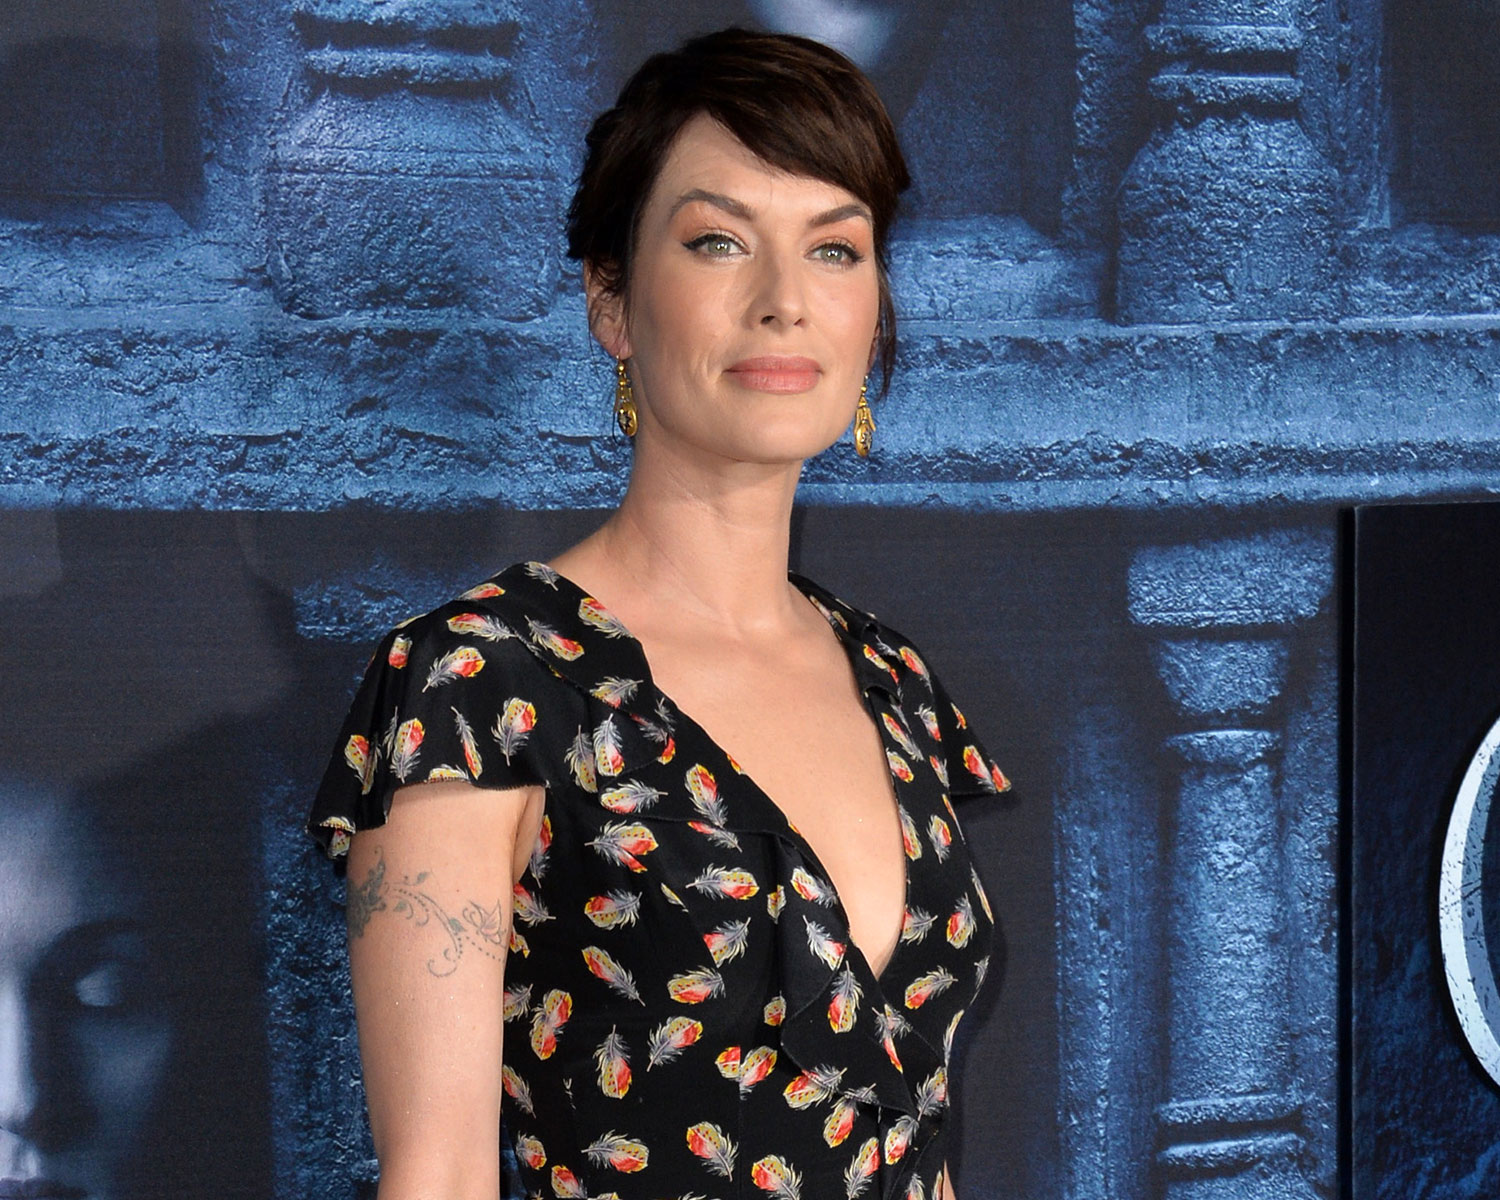 Lena Headey nudes (66 photos), fotos Selfie, Instagram, see through 2019